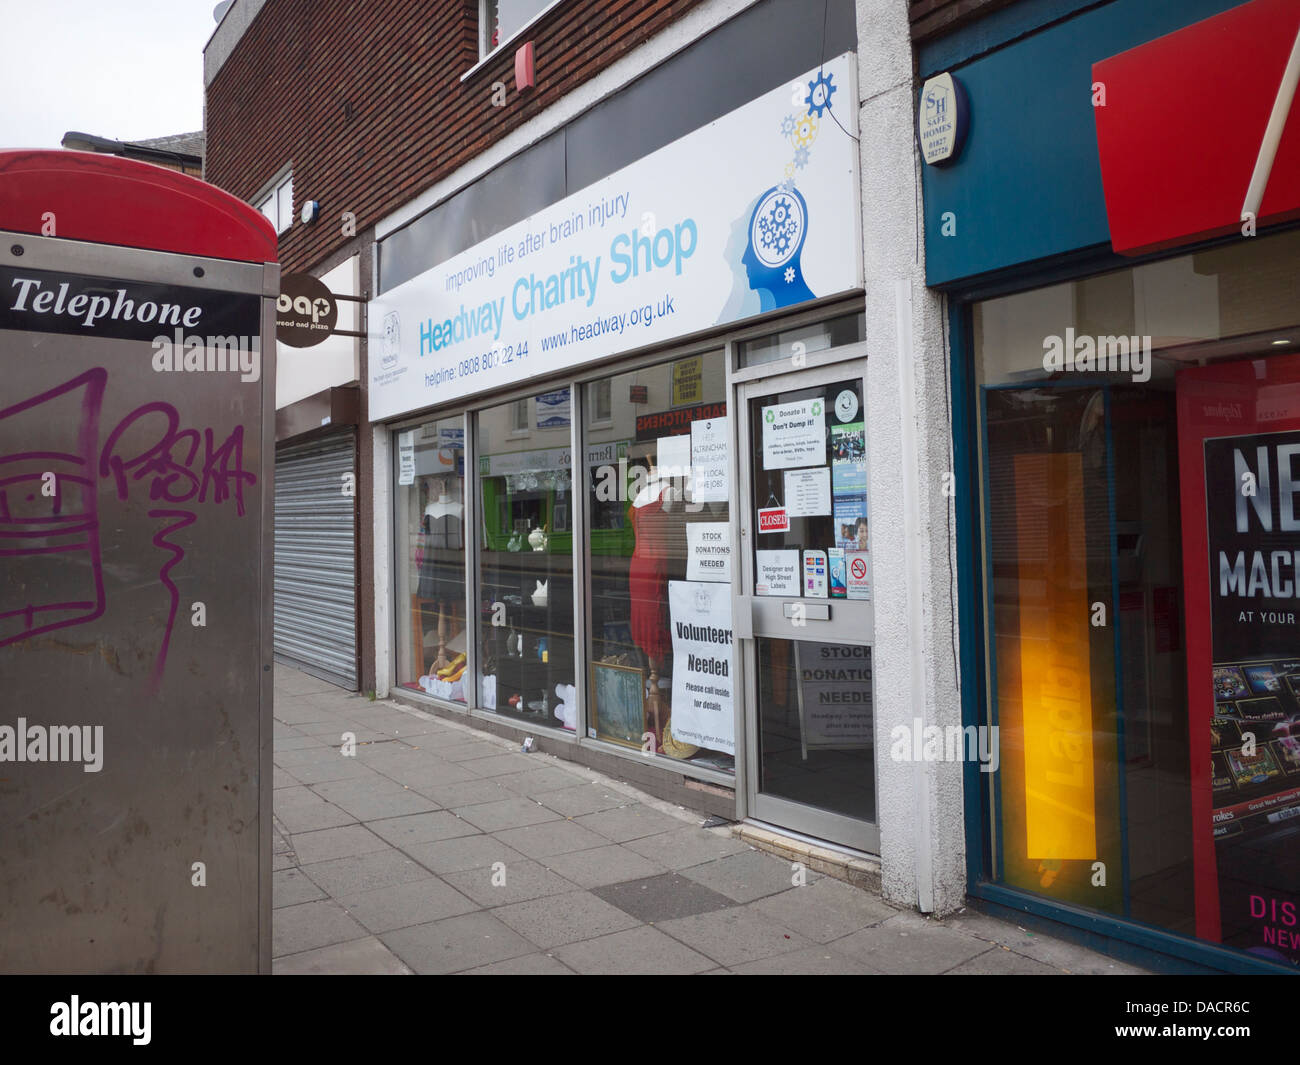 Headway Stock Photos Images Alamy 44 Sign Brown Charity Shop Image